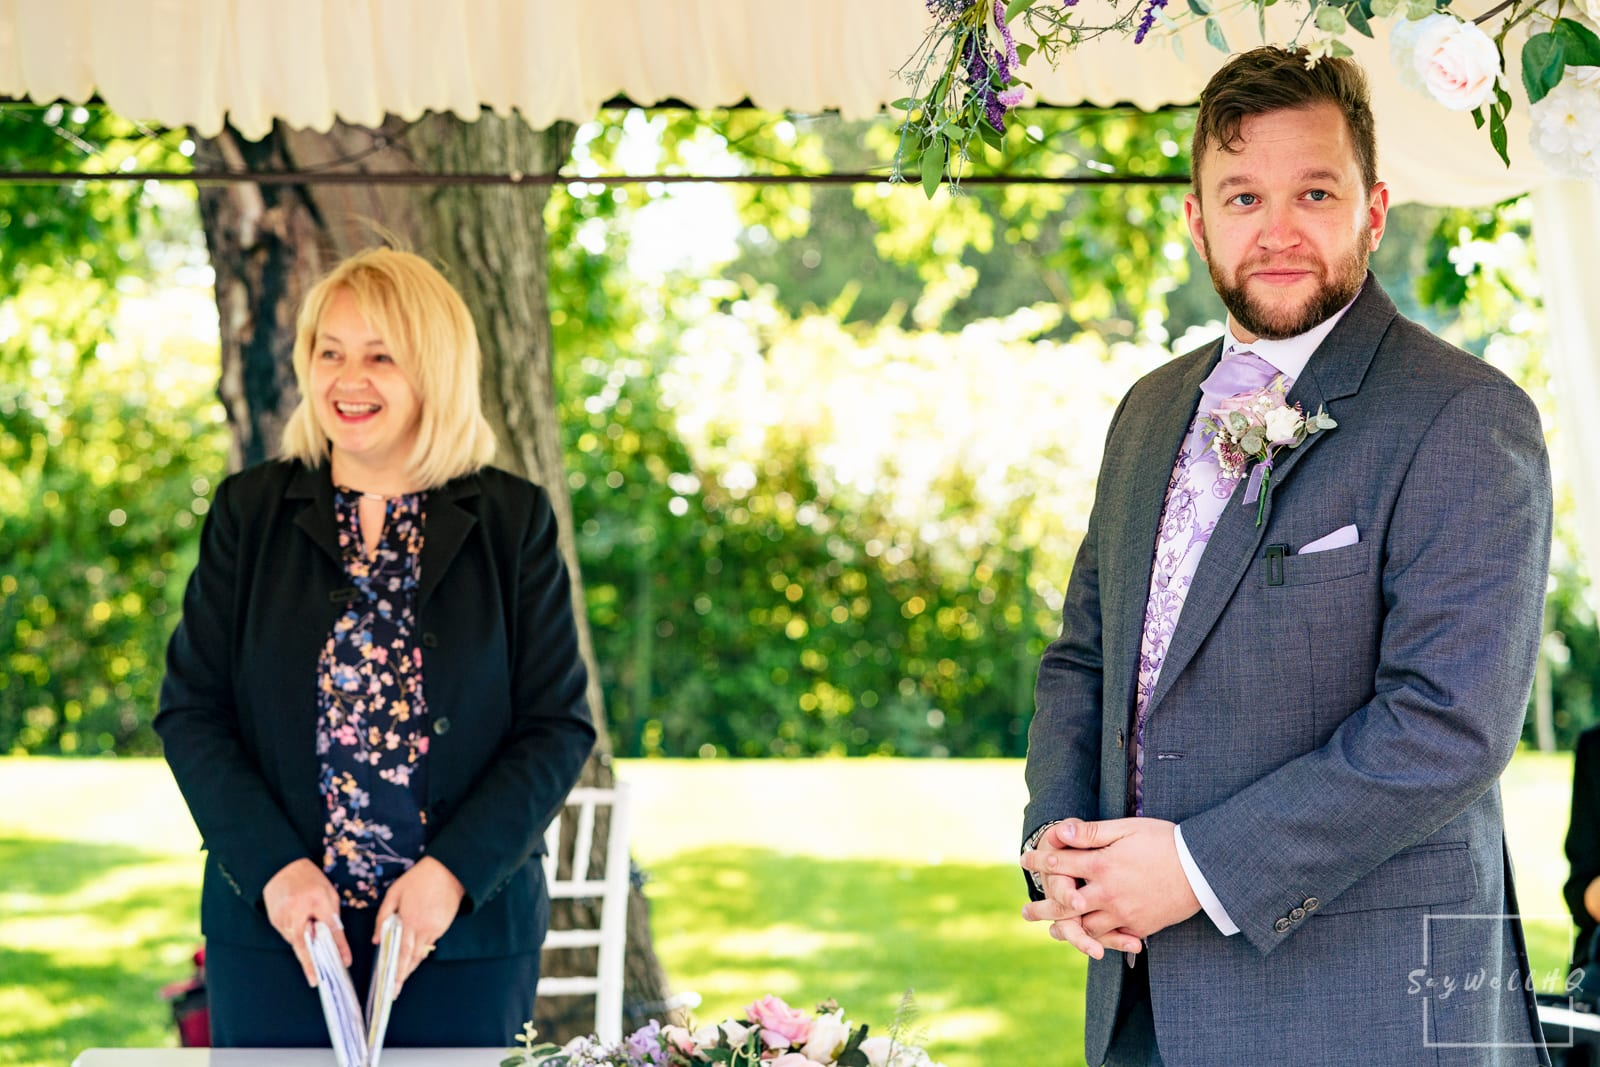 Leicester Wedding Photography at Winstanley House - Groom waits for his Bride to walk down the aisle